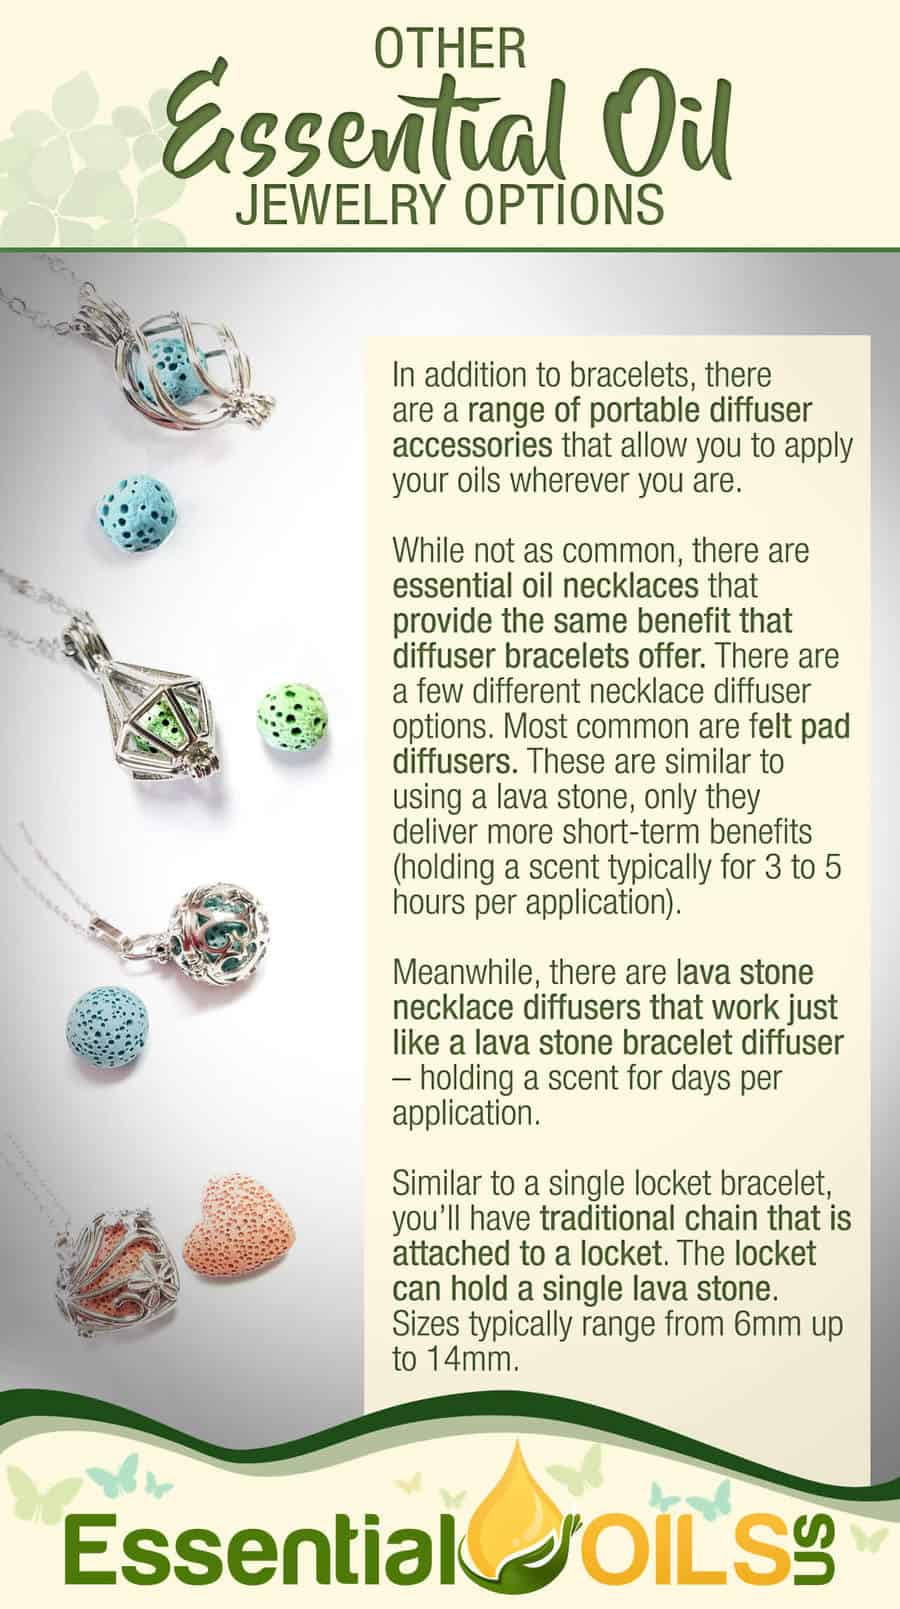 Other Essential Oil Jewelry Options